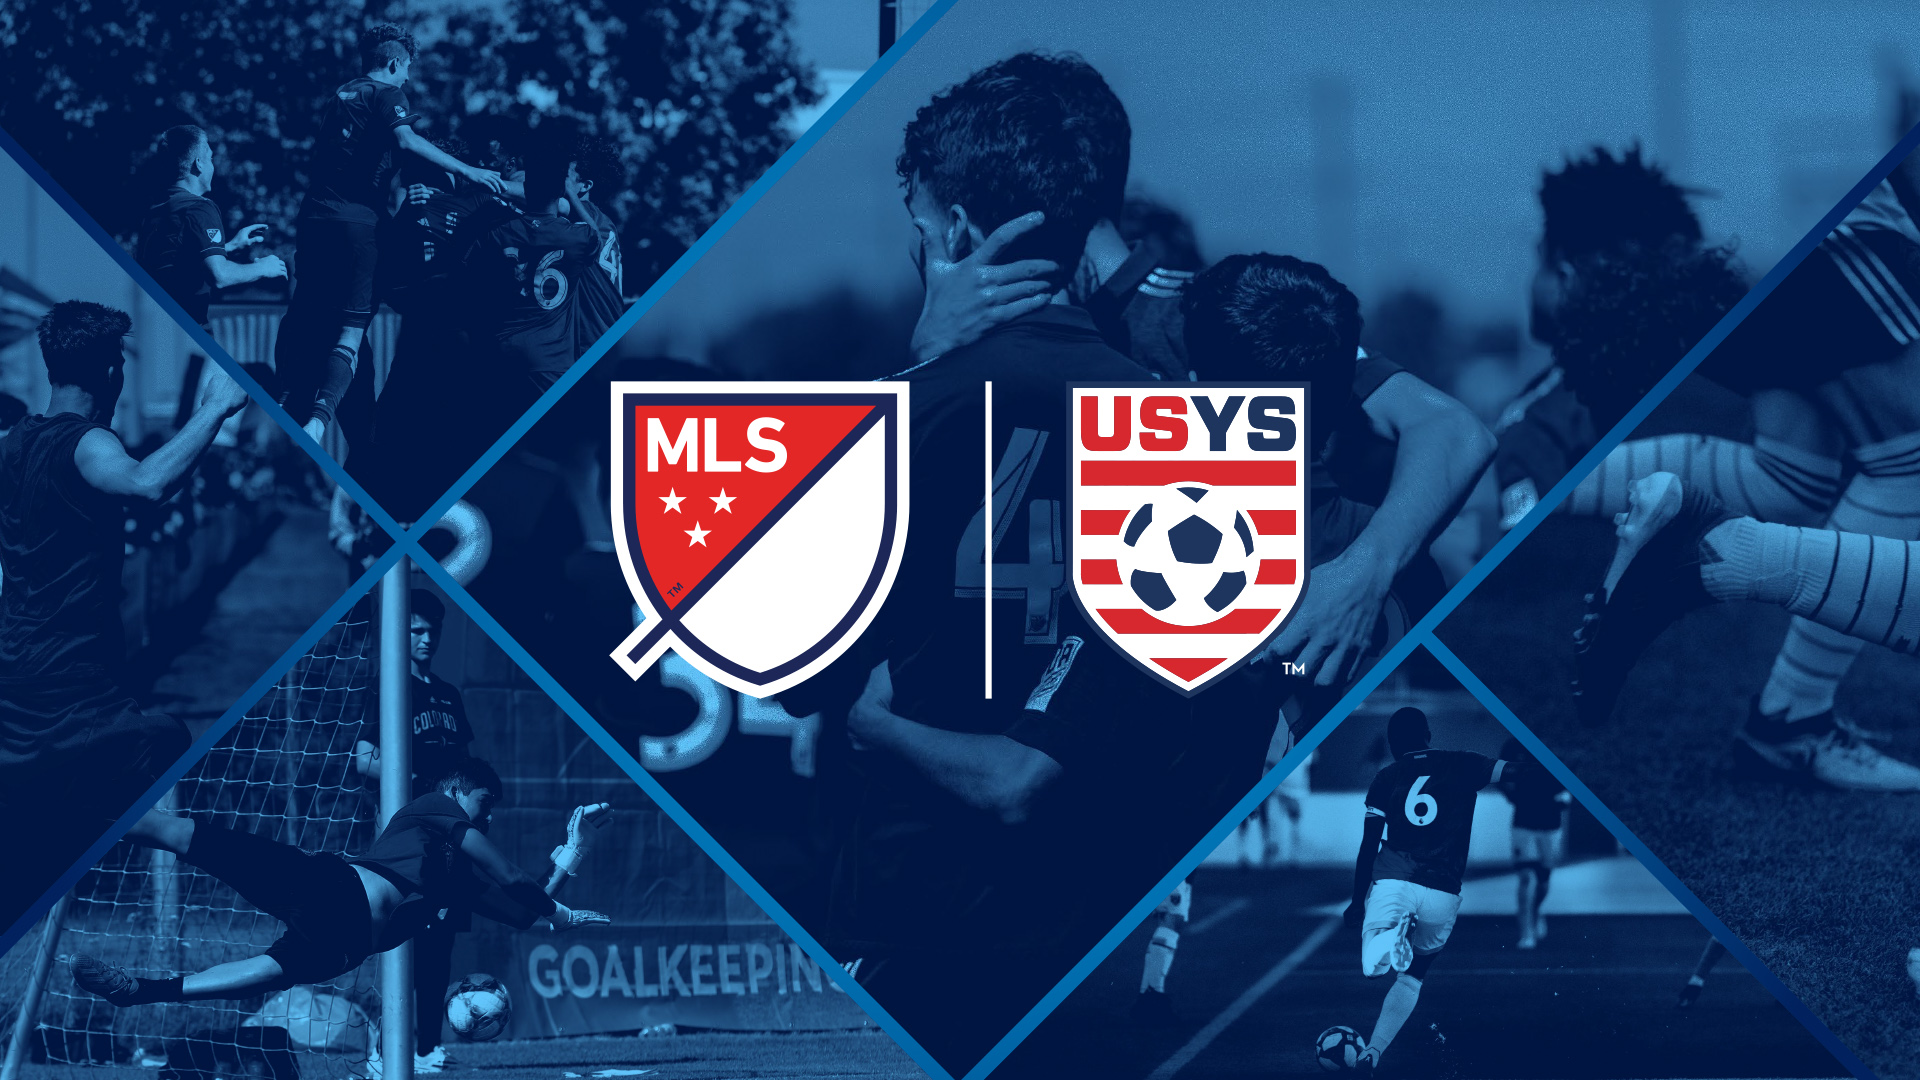 MLS_USYS_graphic